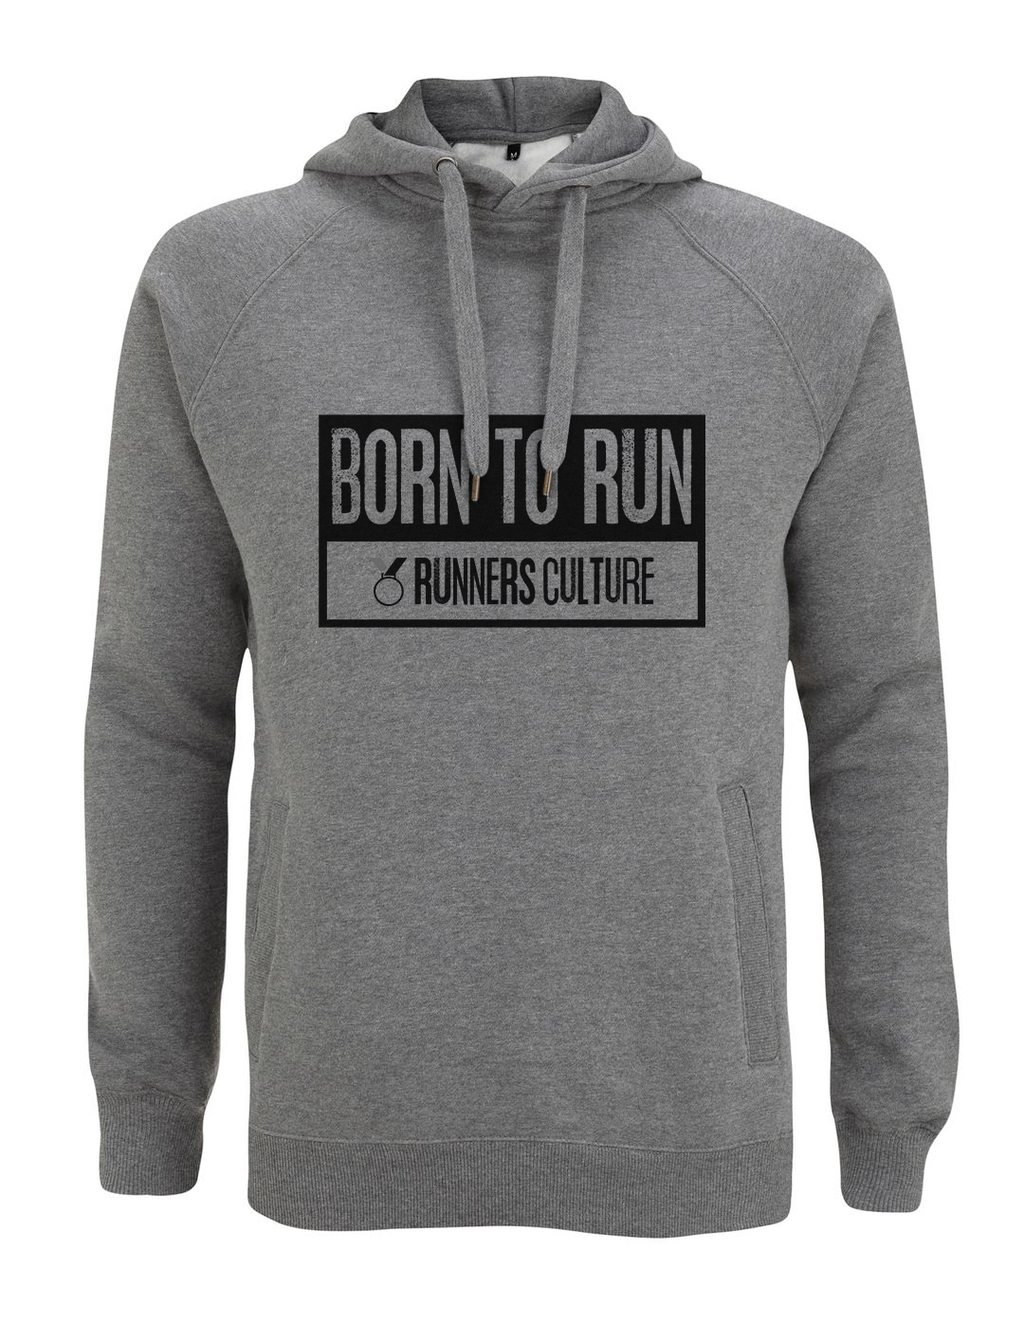 Born To Run Unisex Hoodie